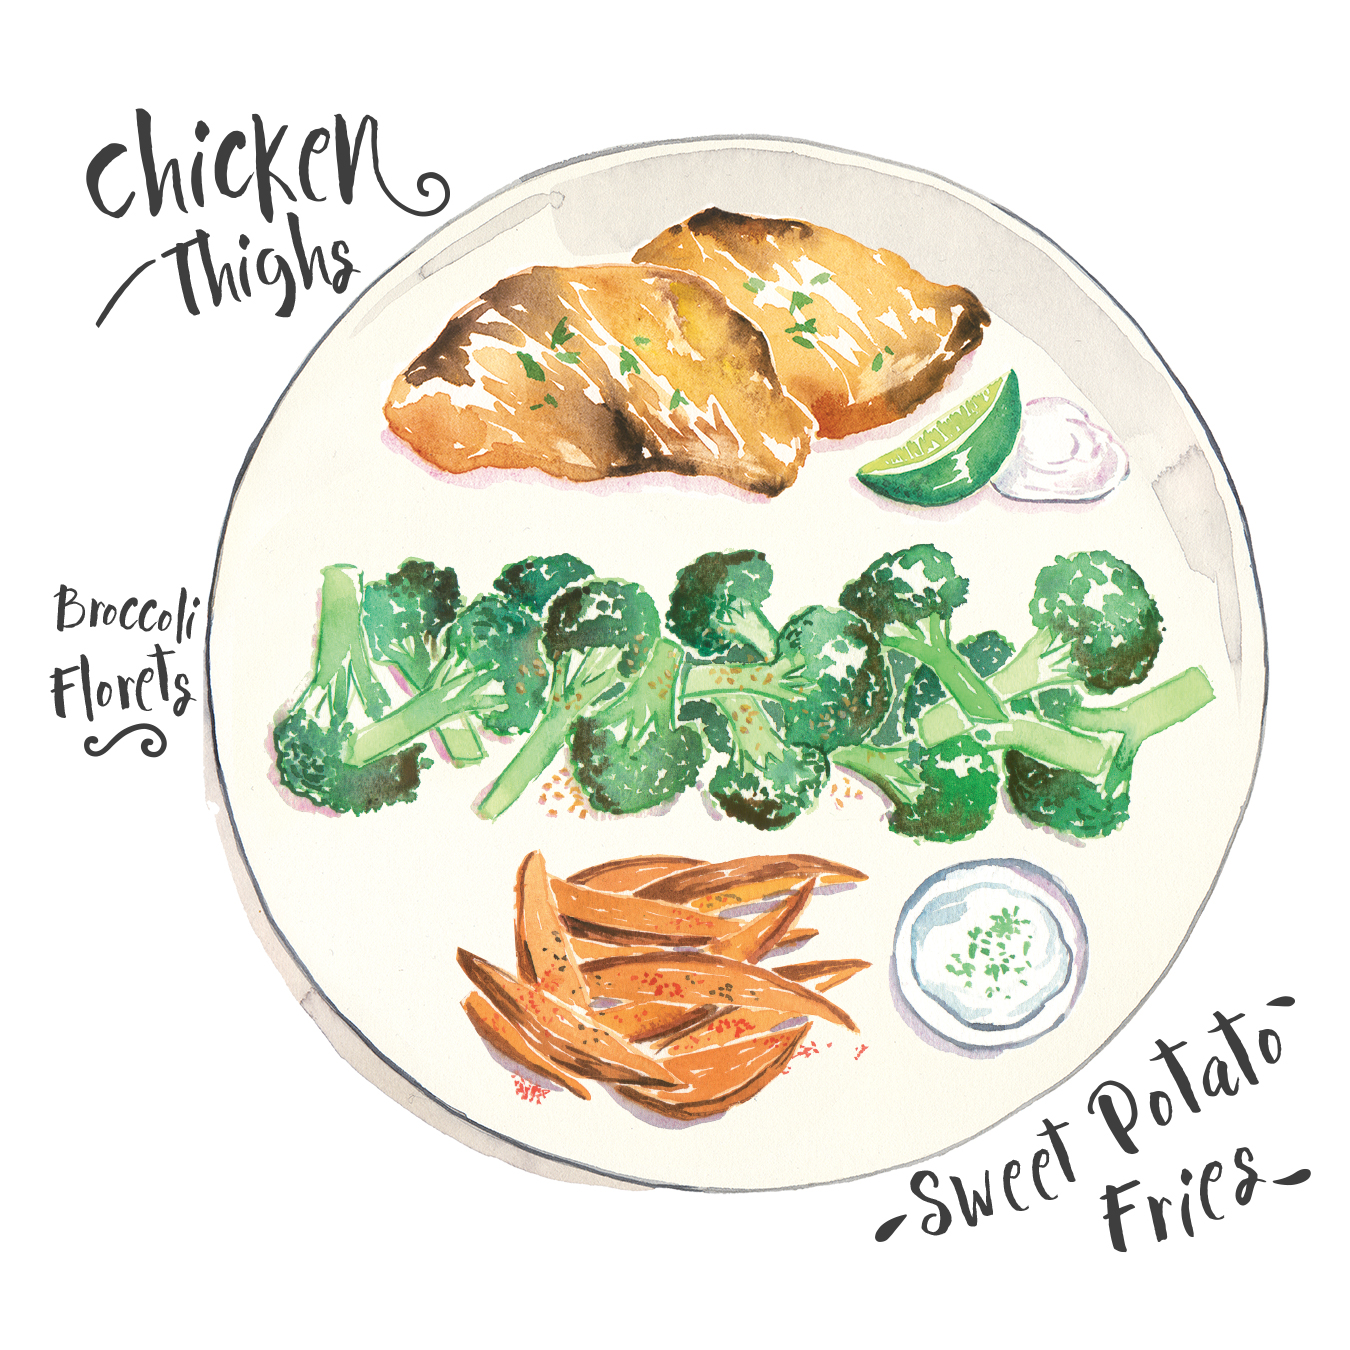 chicken thighs-broccoli florets-sweet potato fries.jpg